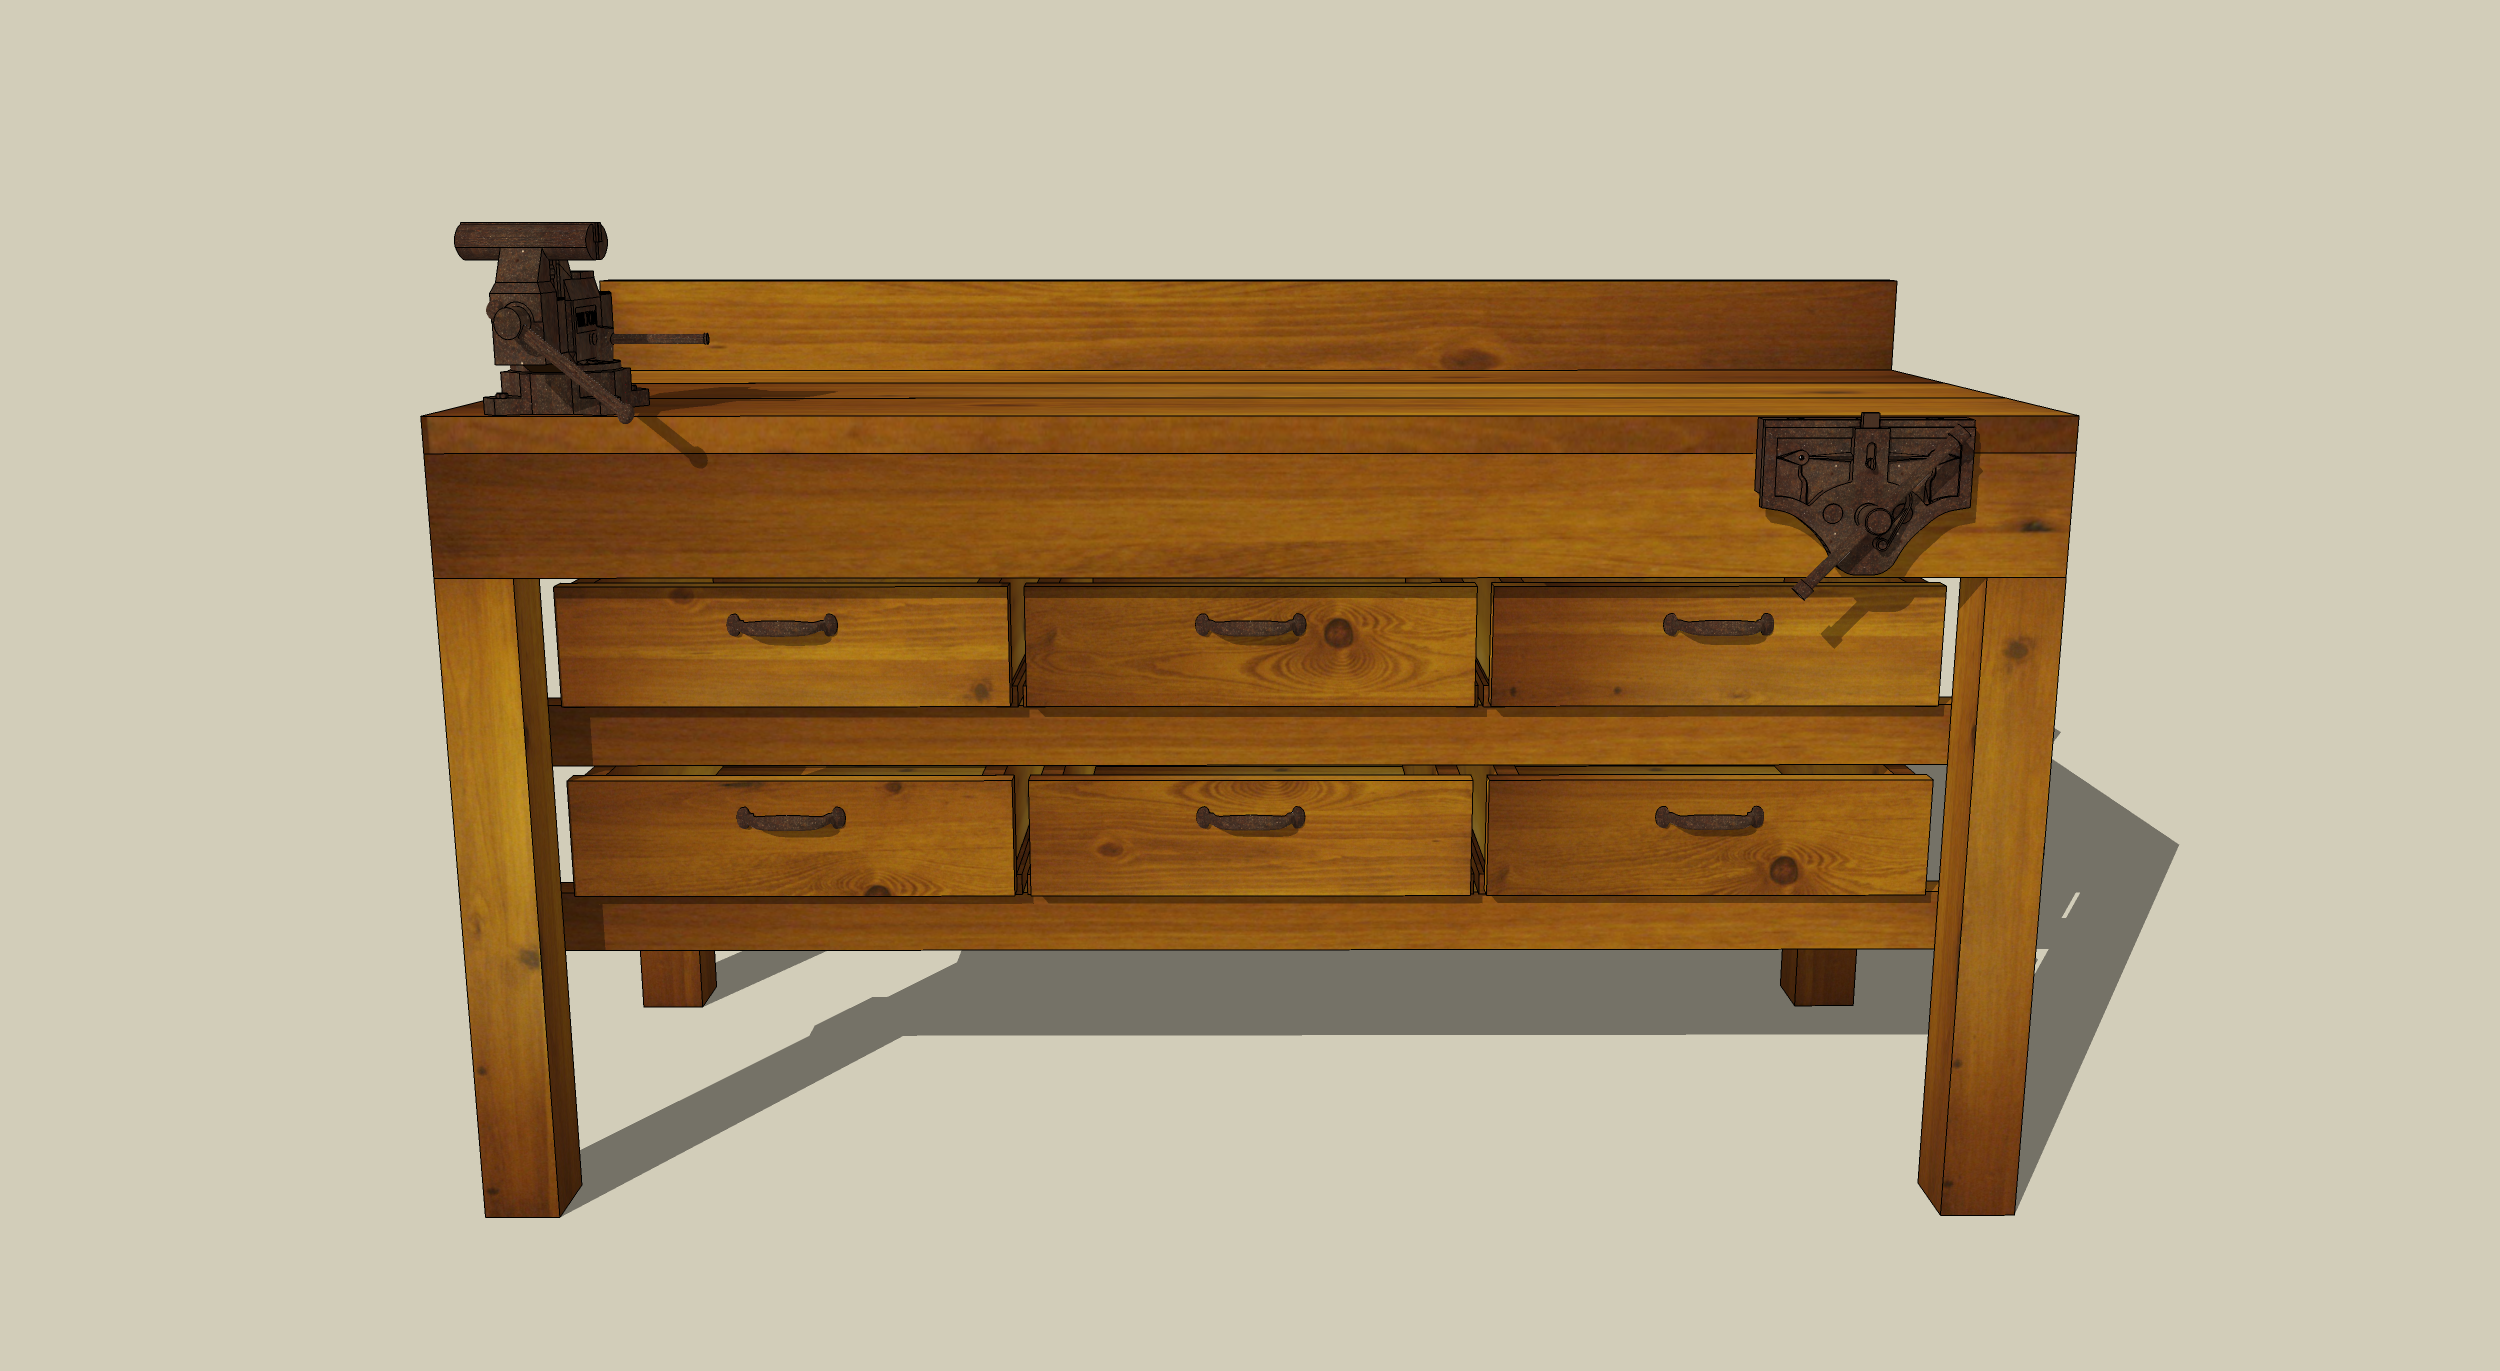 Wooden workbench with drawers plans free download windy soj